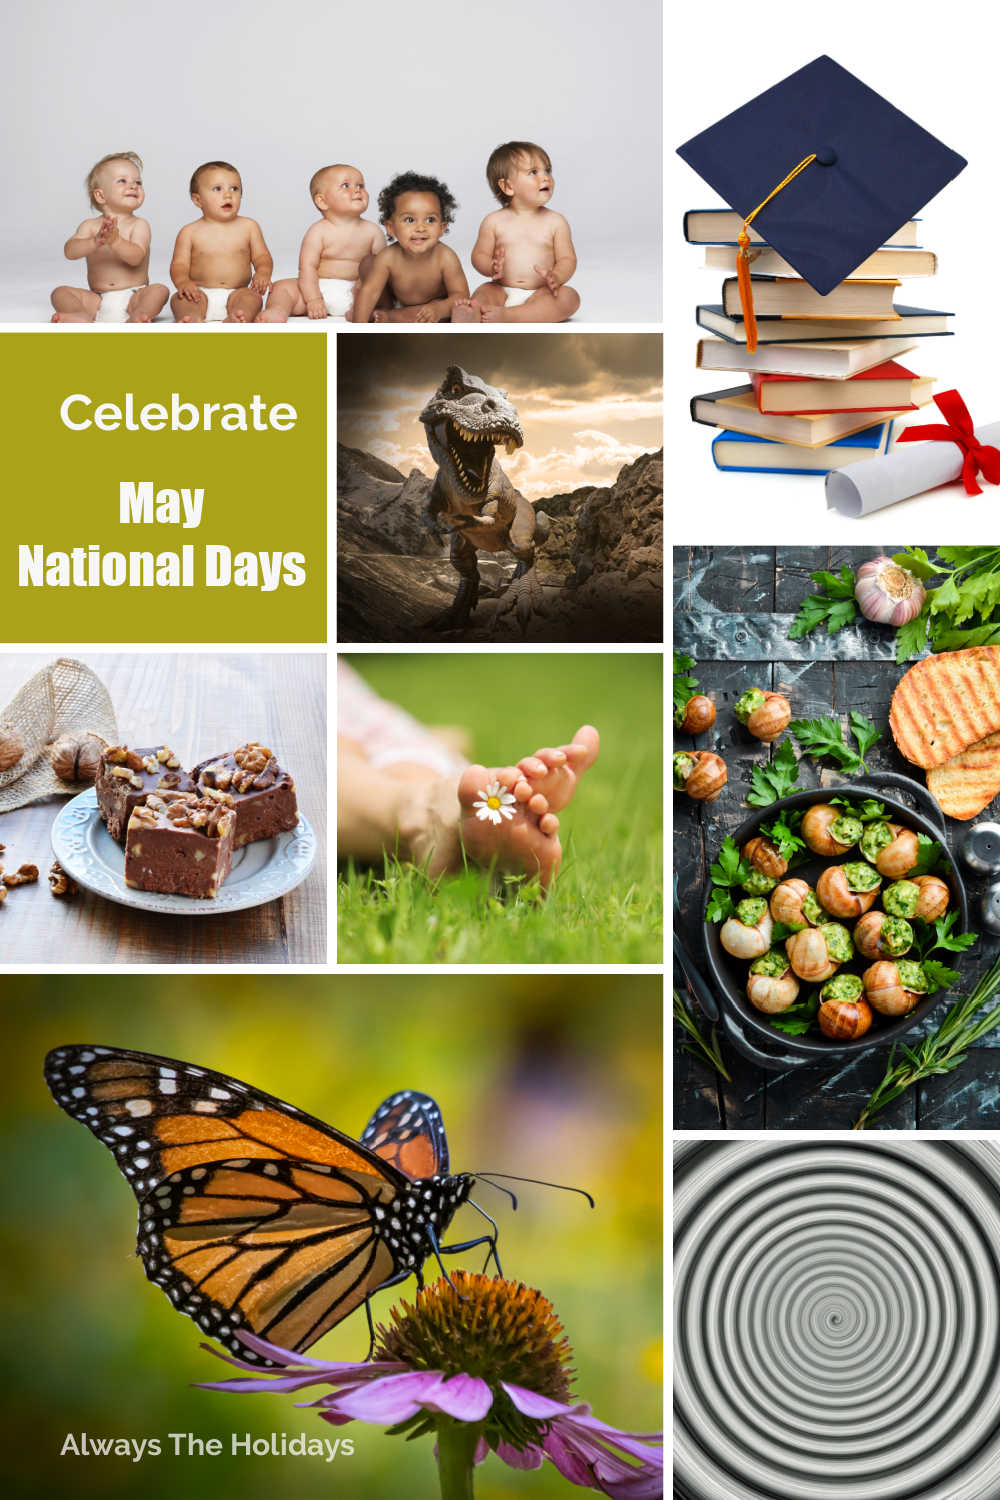 Collage, with books, food, butterfly, babies and other images and the words Celebrate May National Days.